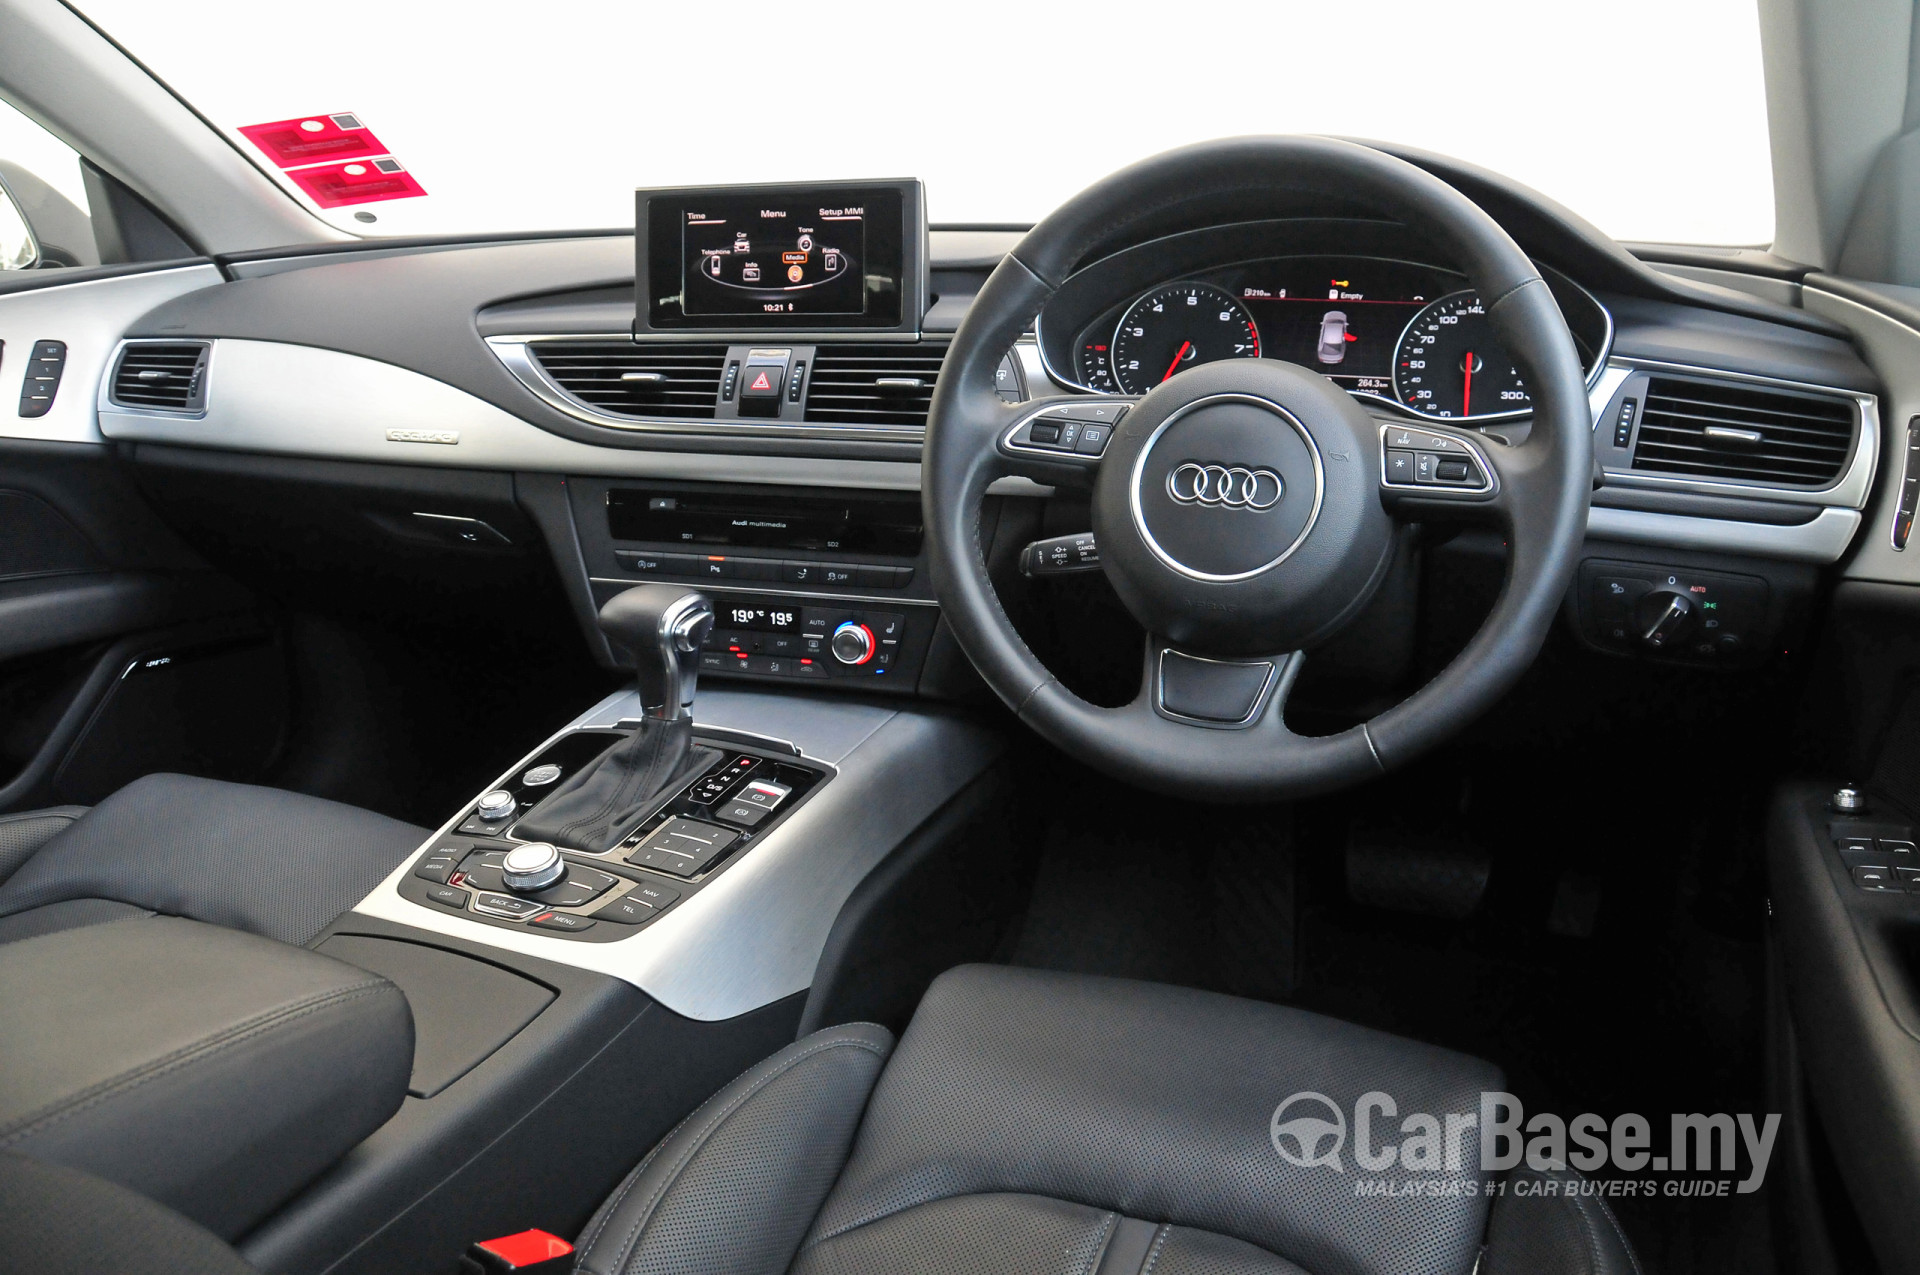 audi a7 sportback 4g 2012 interior image 10845 in malaysia reviews specs prices. Black Bedroom Furniture Sets. Home Design Ideas